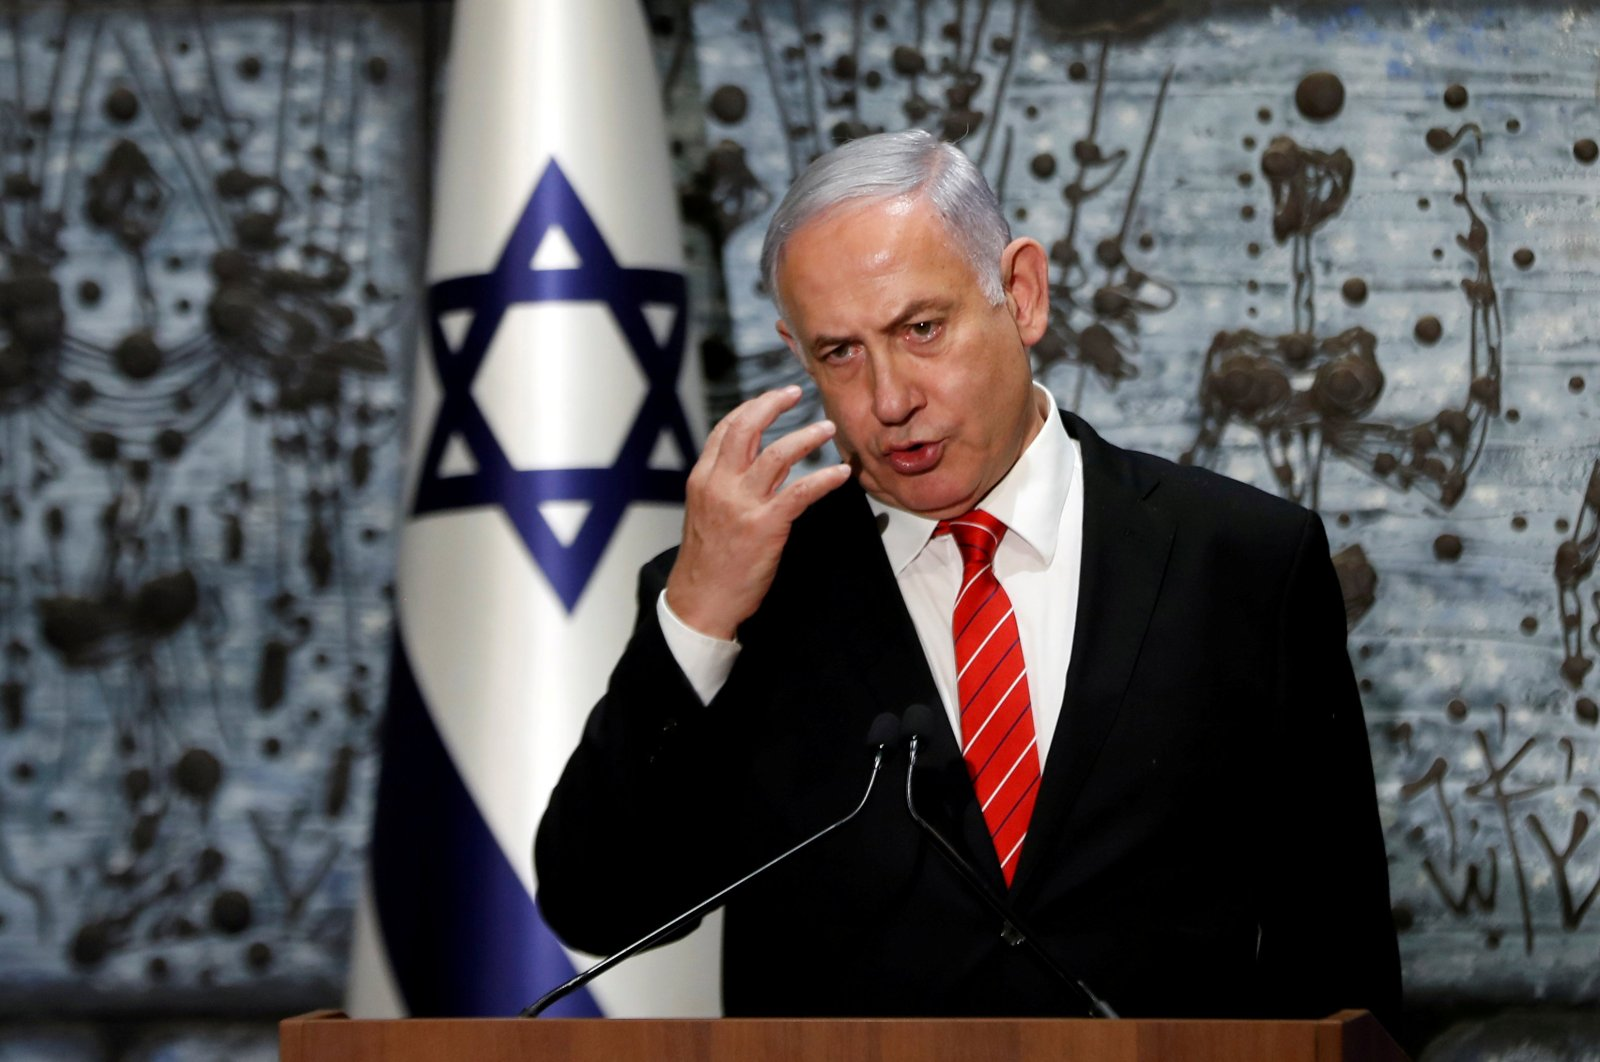 Israeli Prime Minister Benjamin Netanyahu speaks during a nomination ceremony, Jerusalem, Sept. 25, 2019. (REUTERS Photo)